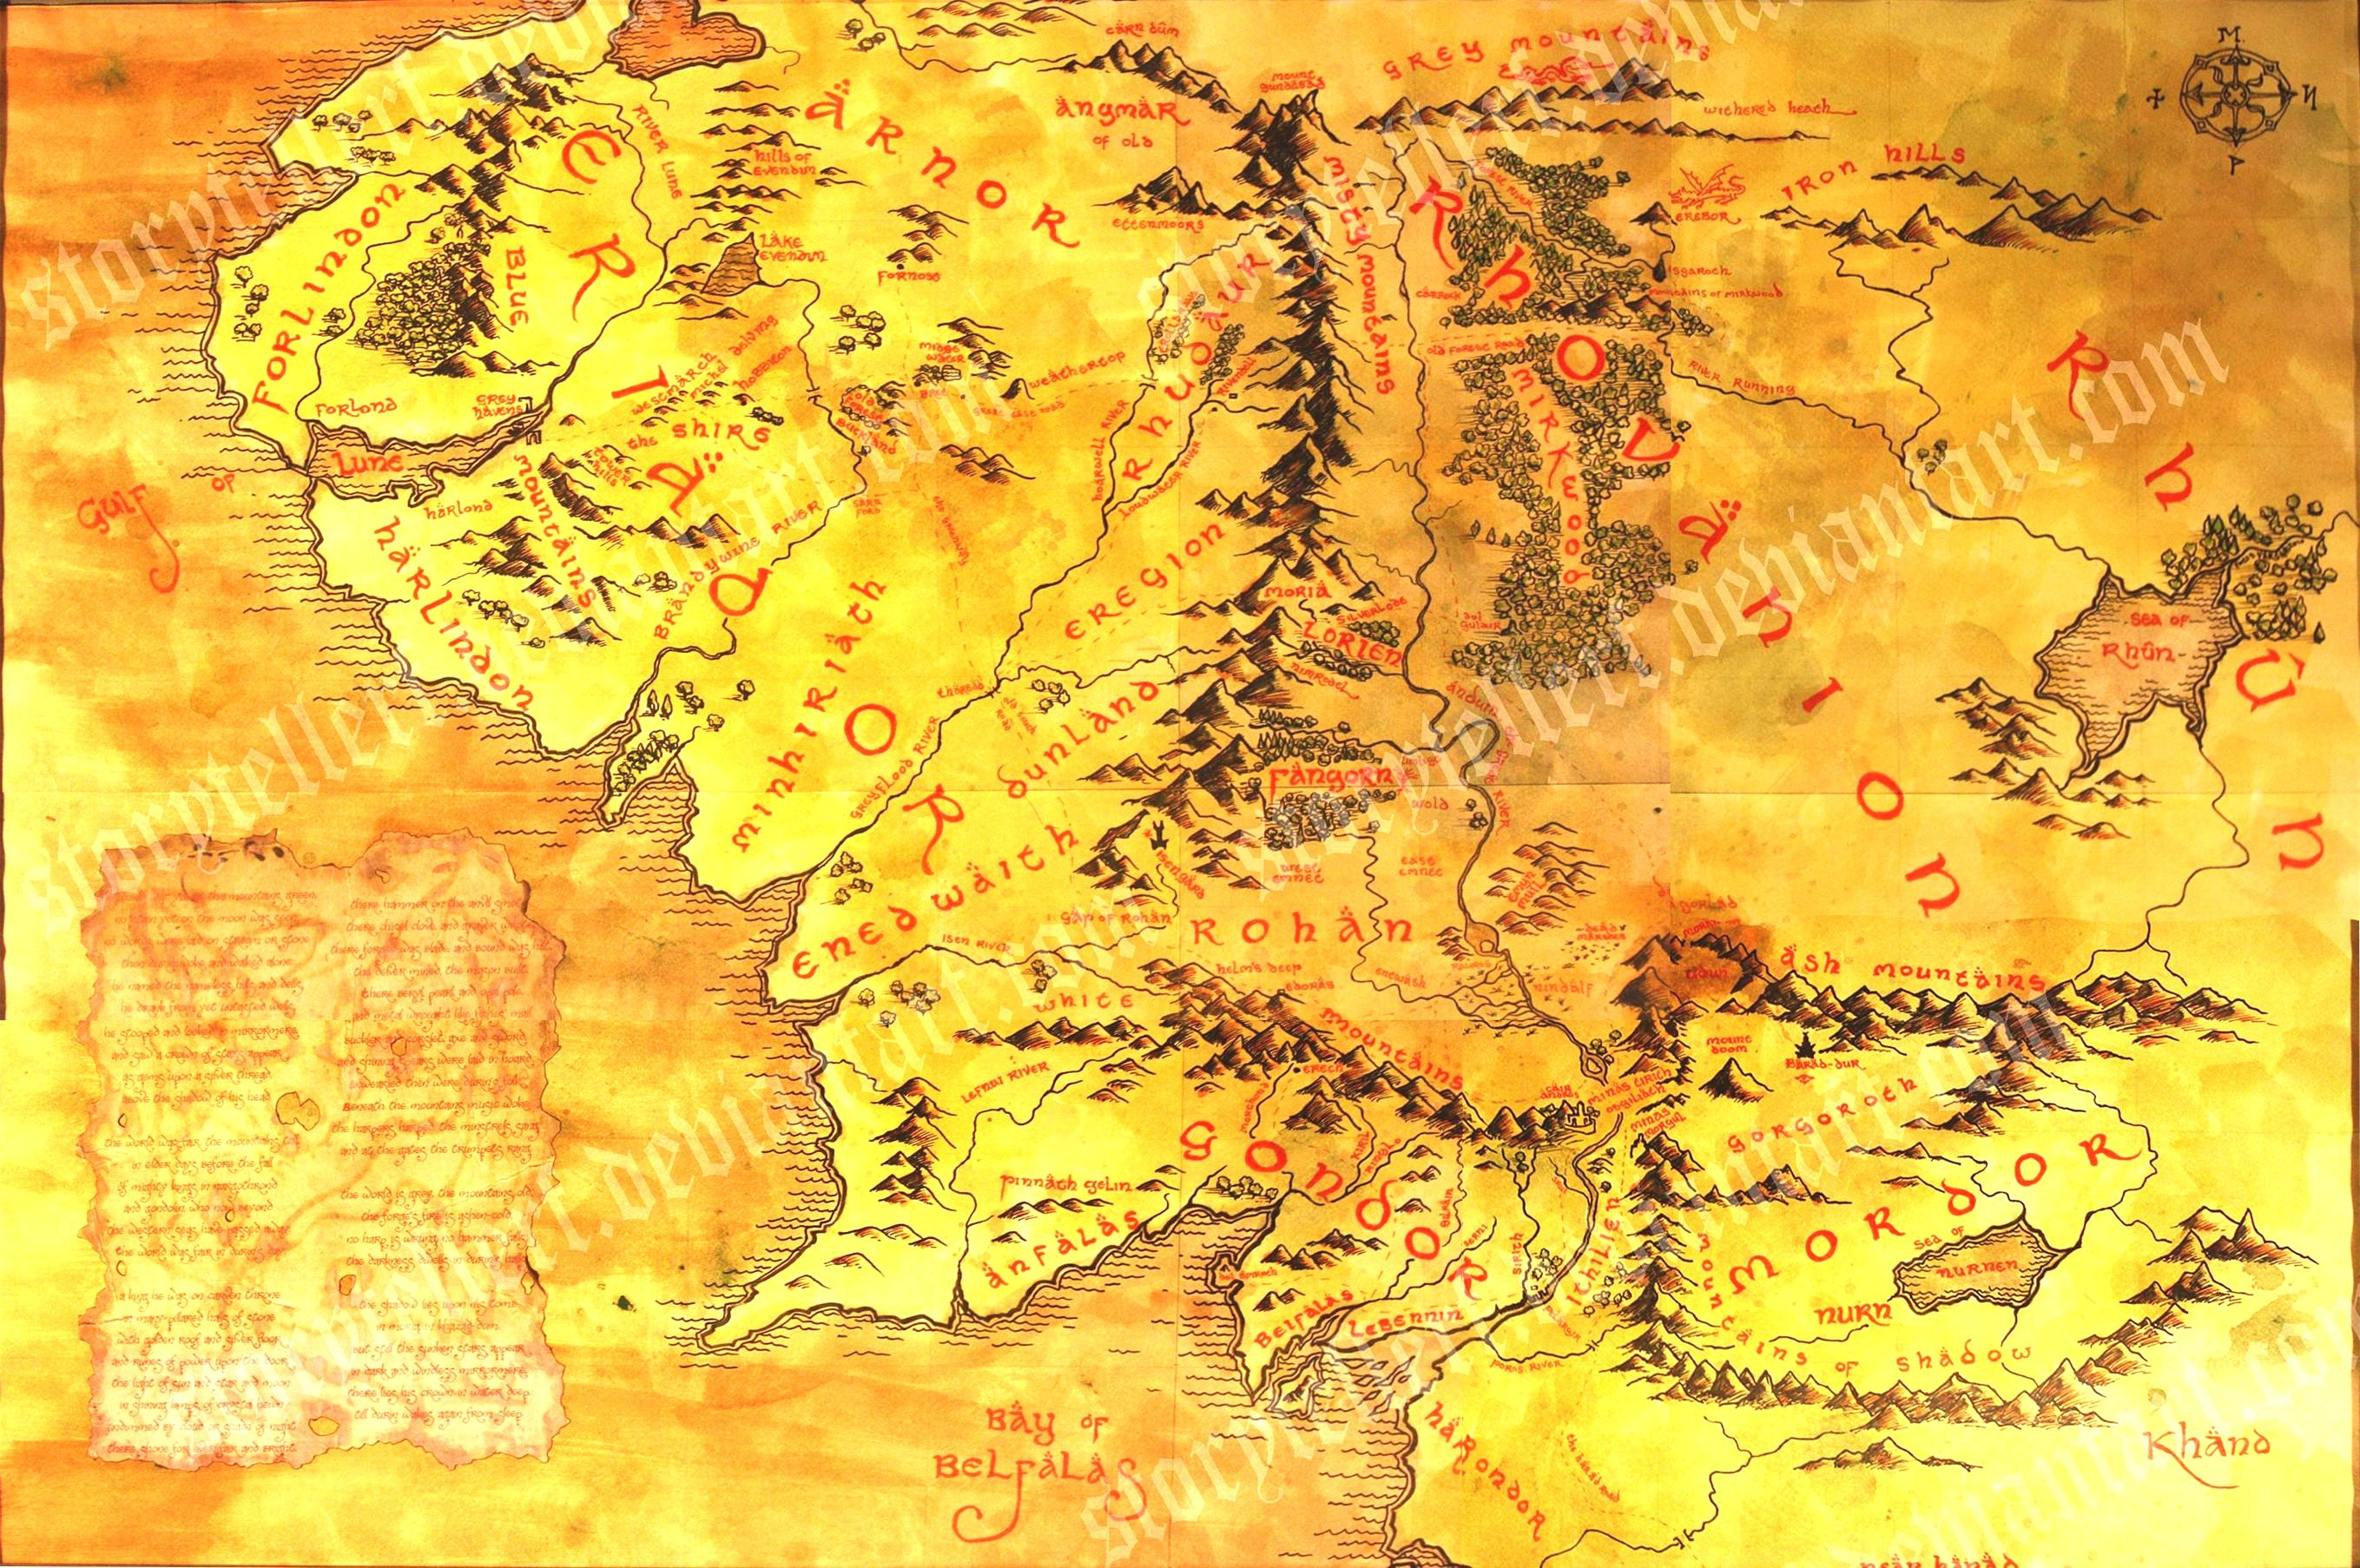 2718x1806 middle earth map desktop wallpaper also full map of middle earth